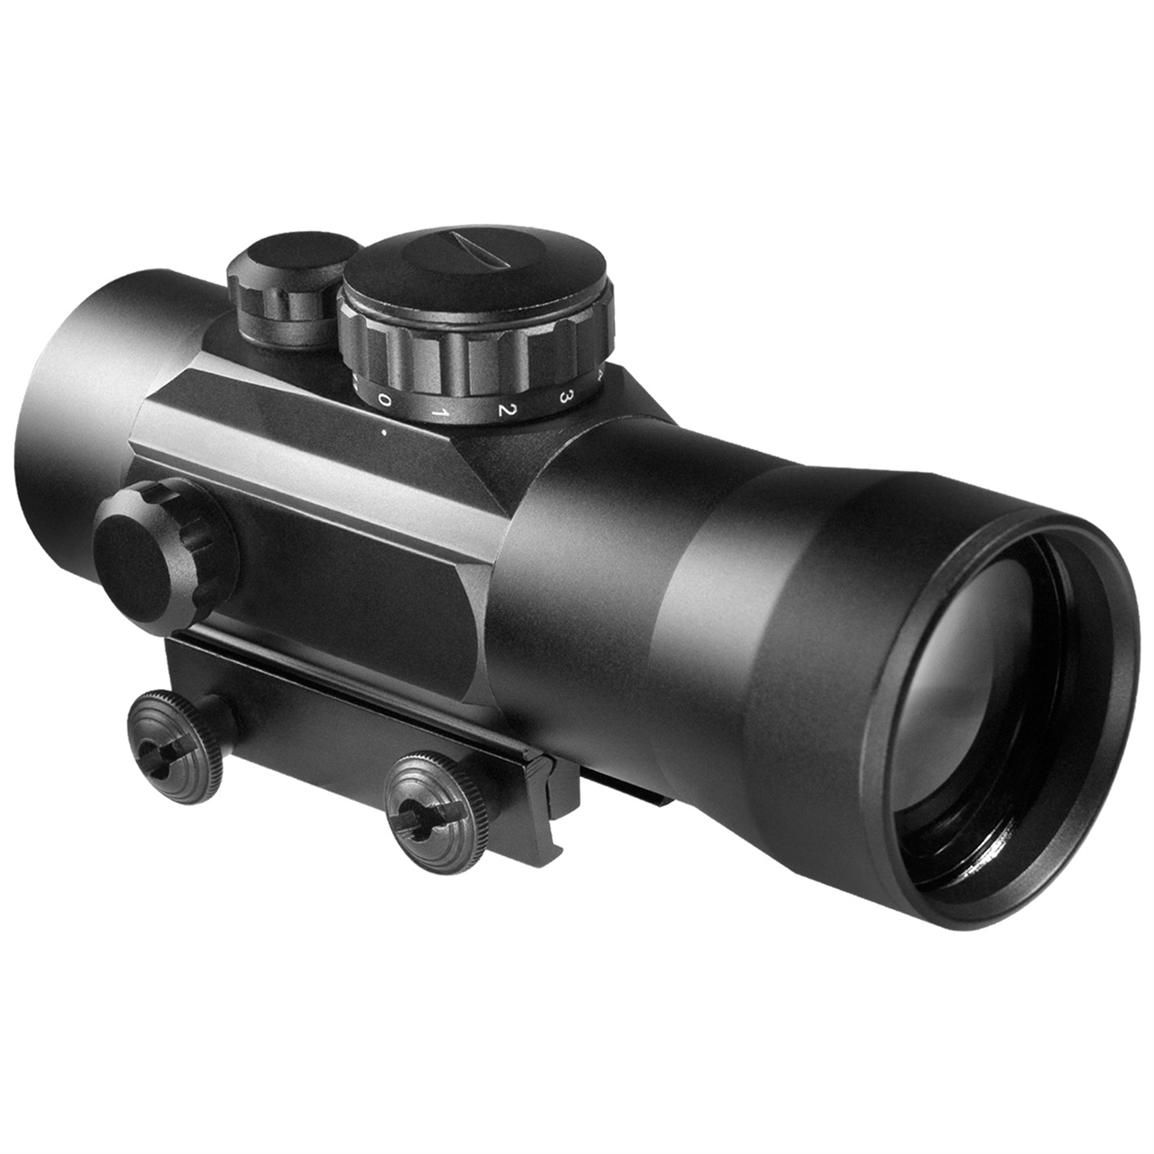 Barska 2x30 mm IR Red Dot Scope